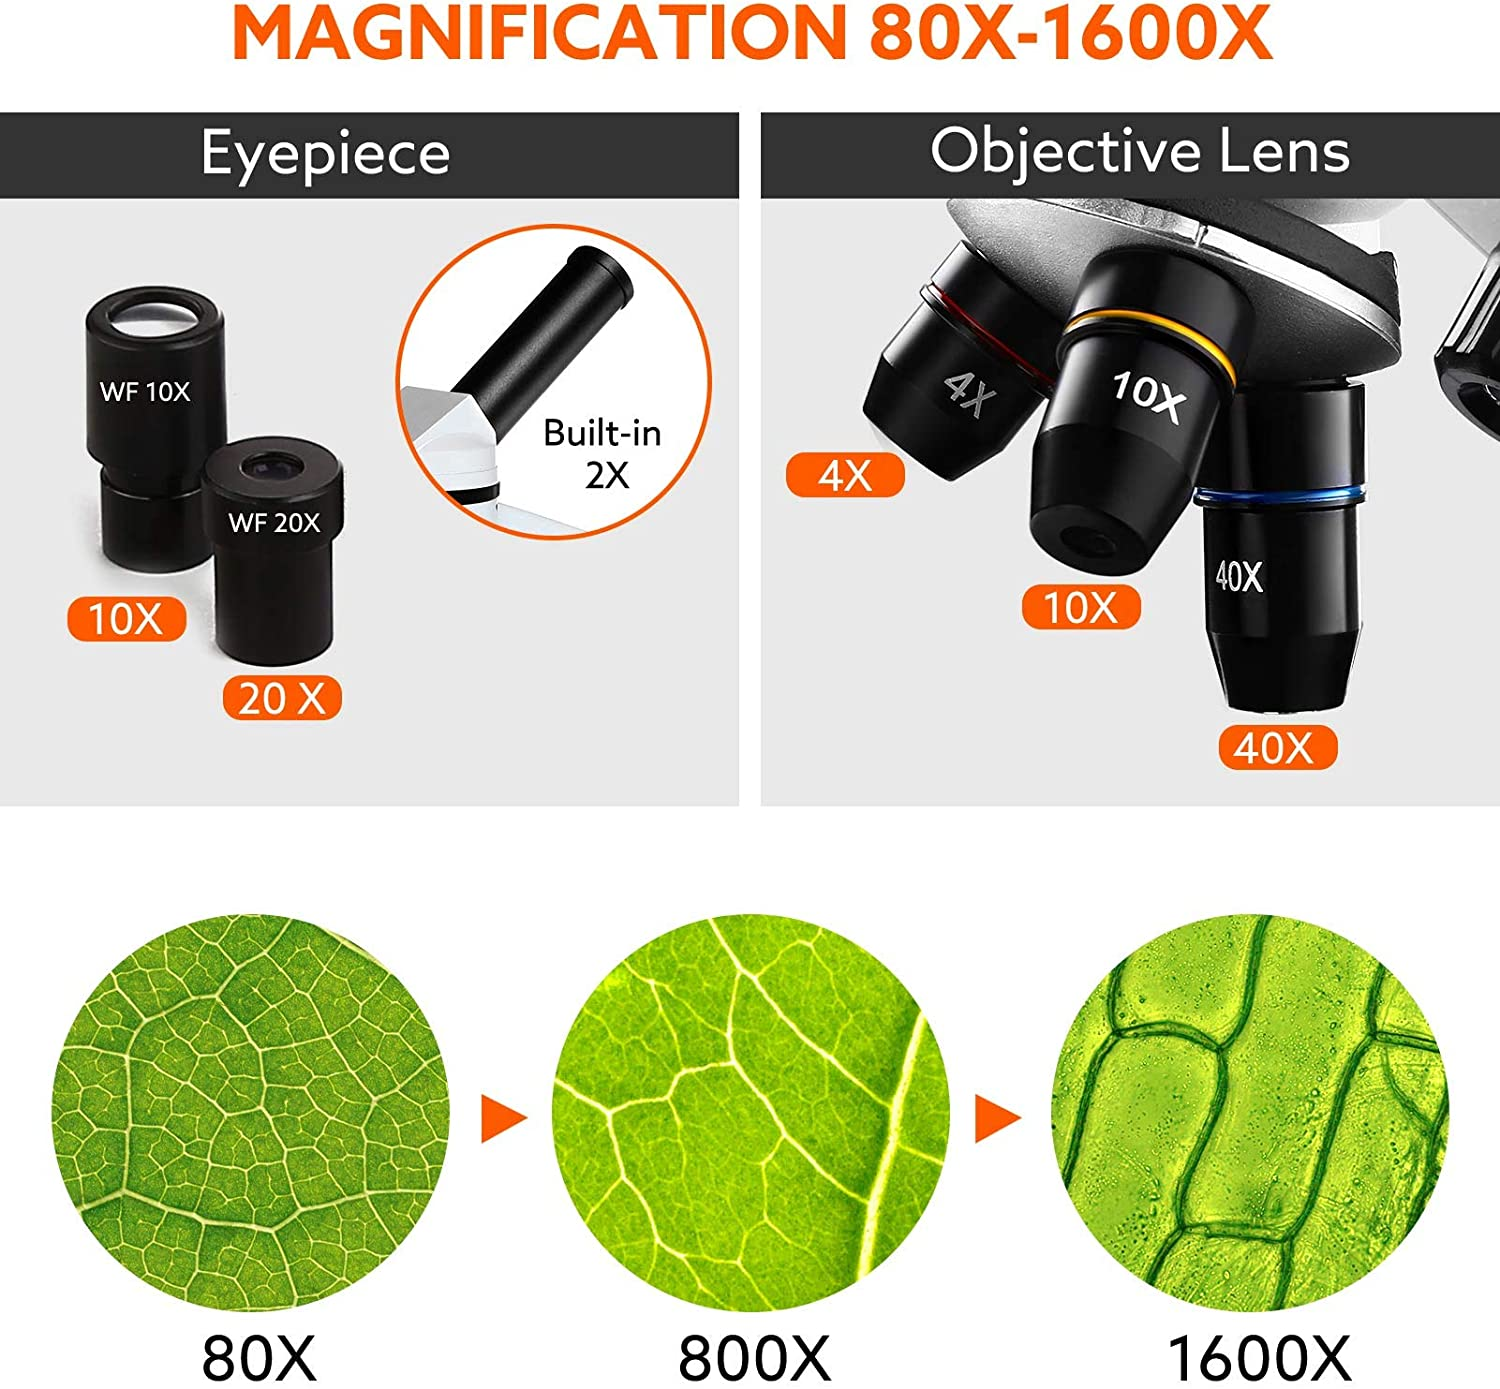 LED Lights Built-in Relay Lens Binocular Microscopes for Students Slides Elikliv 40X-1600X Biological Compound Microscope with 2 Oculars and 3 Objectives